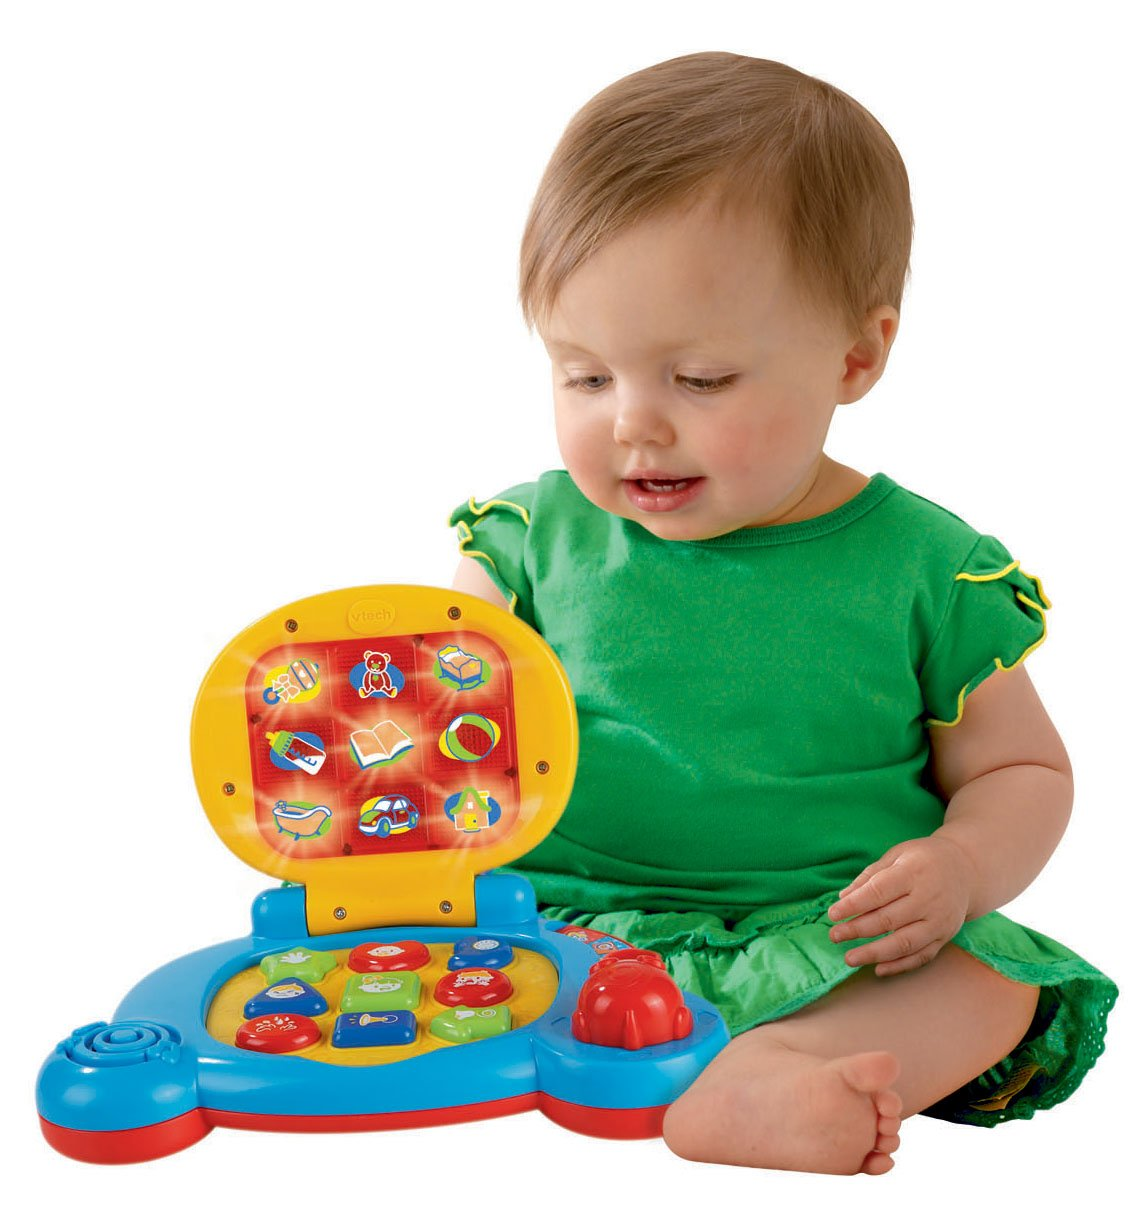 6 Month Old Baby Toys Toys For Babies By Age Toys For Babies 12 To 18 Month Old